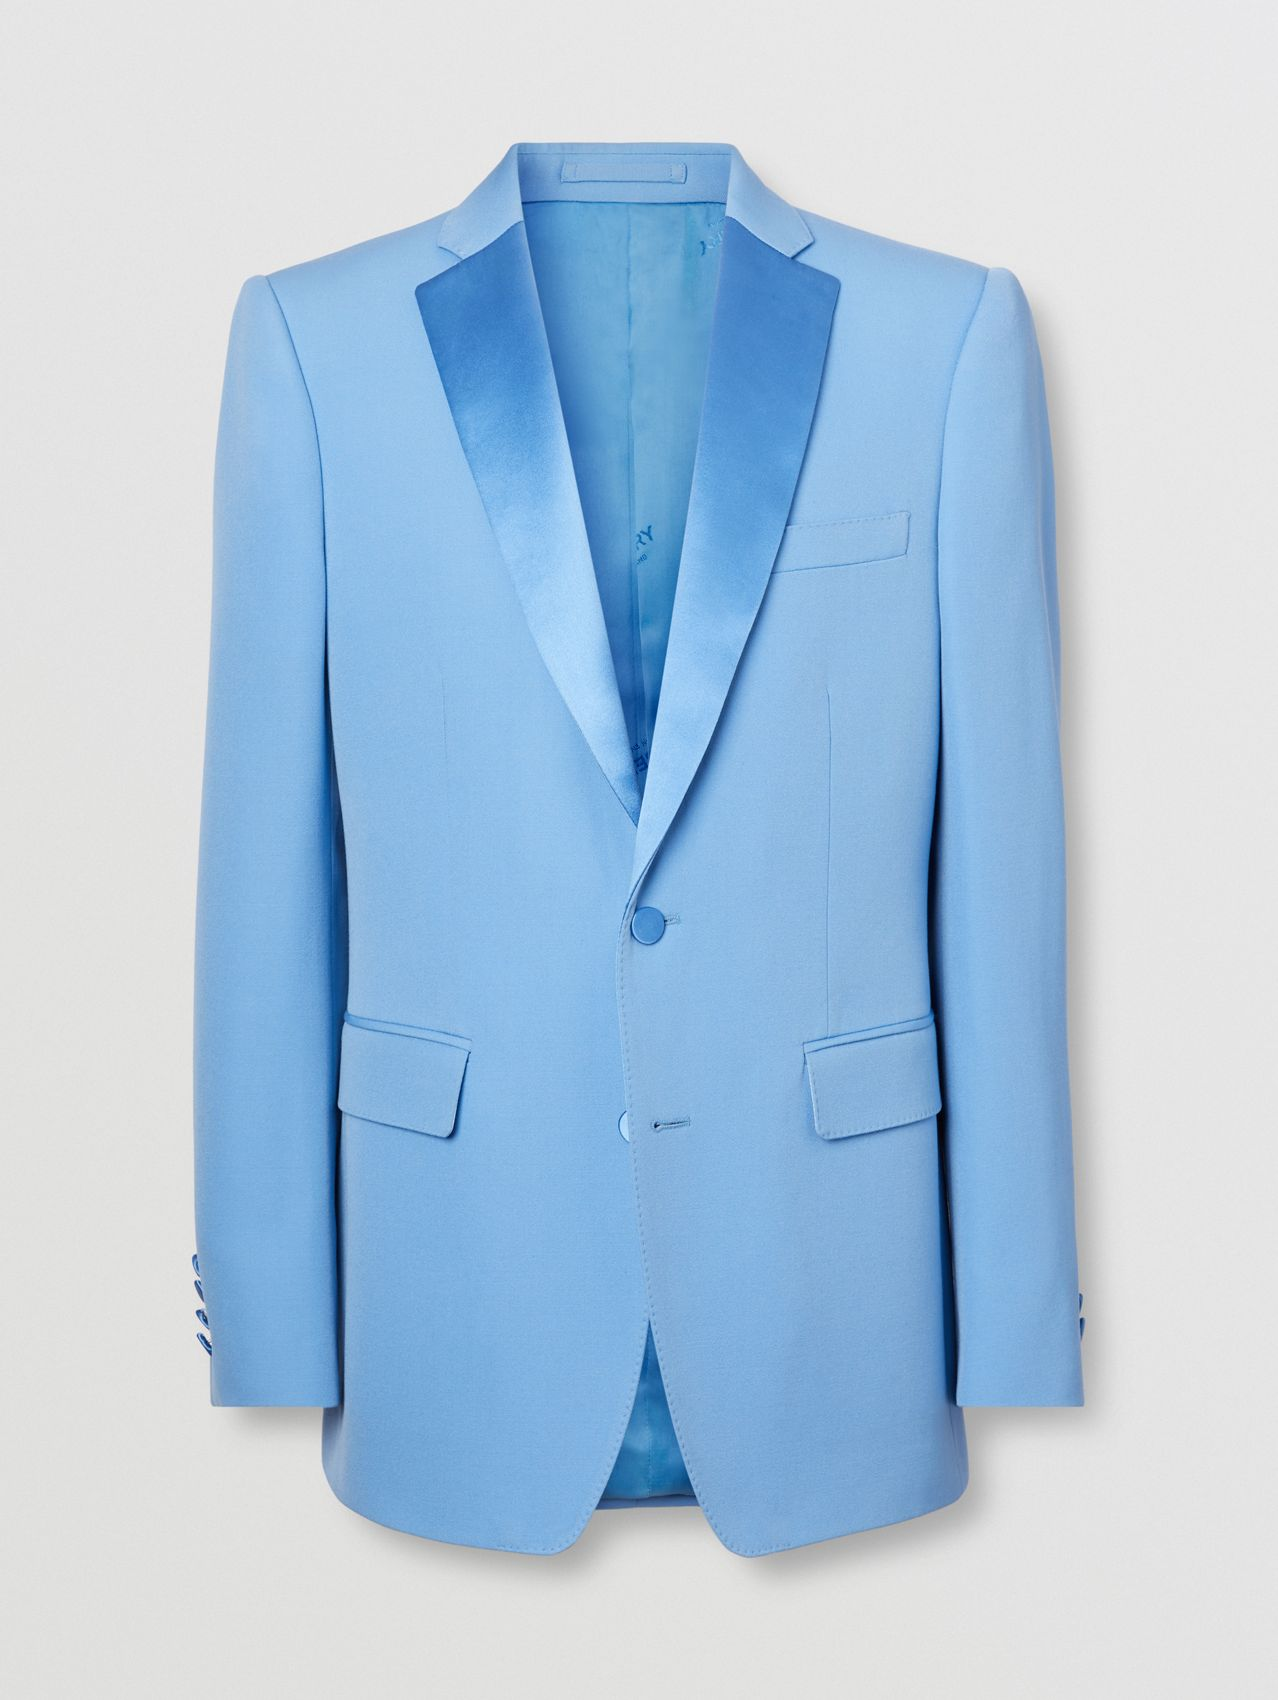 English Fit Grain De Poudre Wool Tuxedo Jacket in Vivid Cobalt